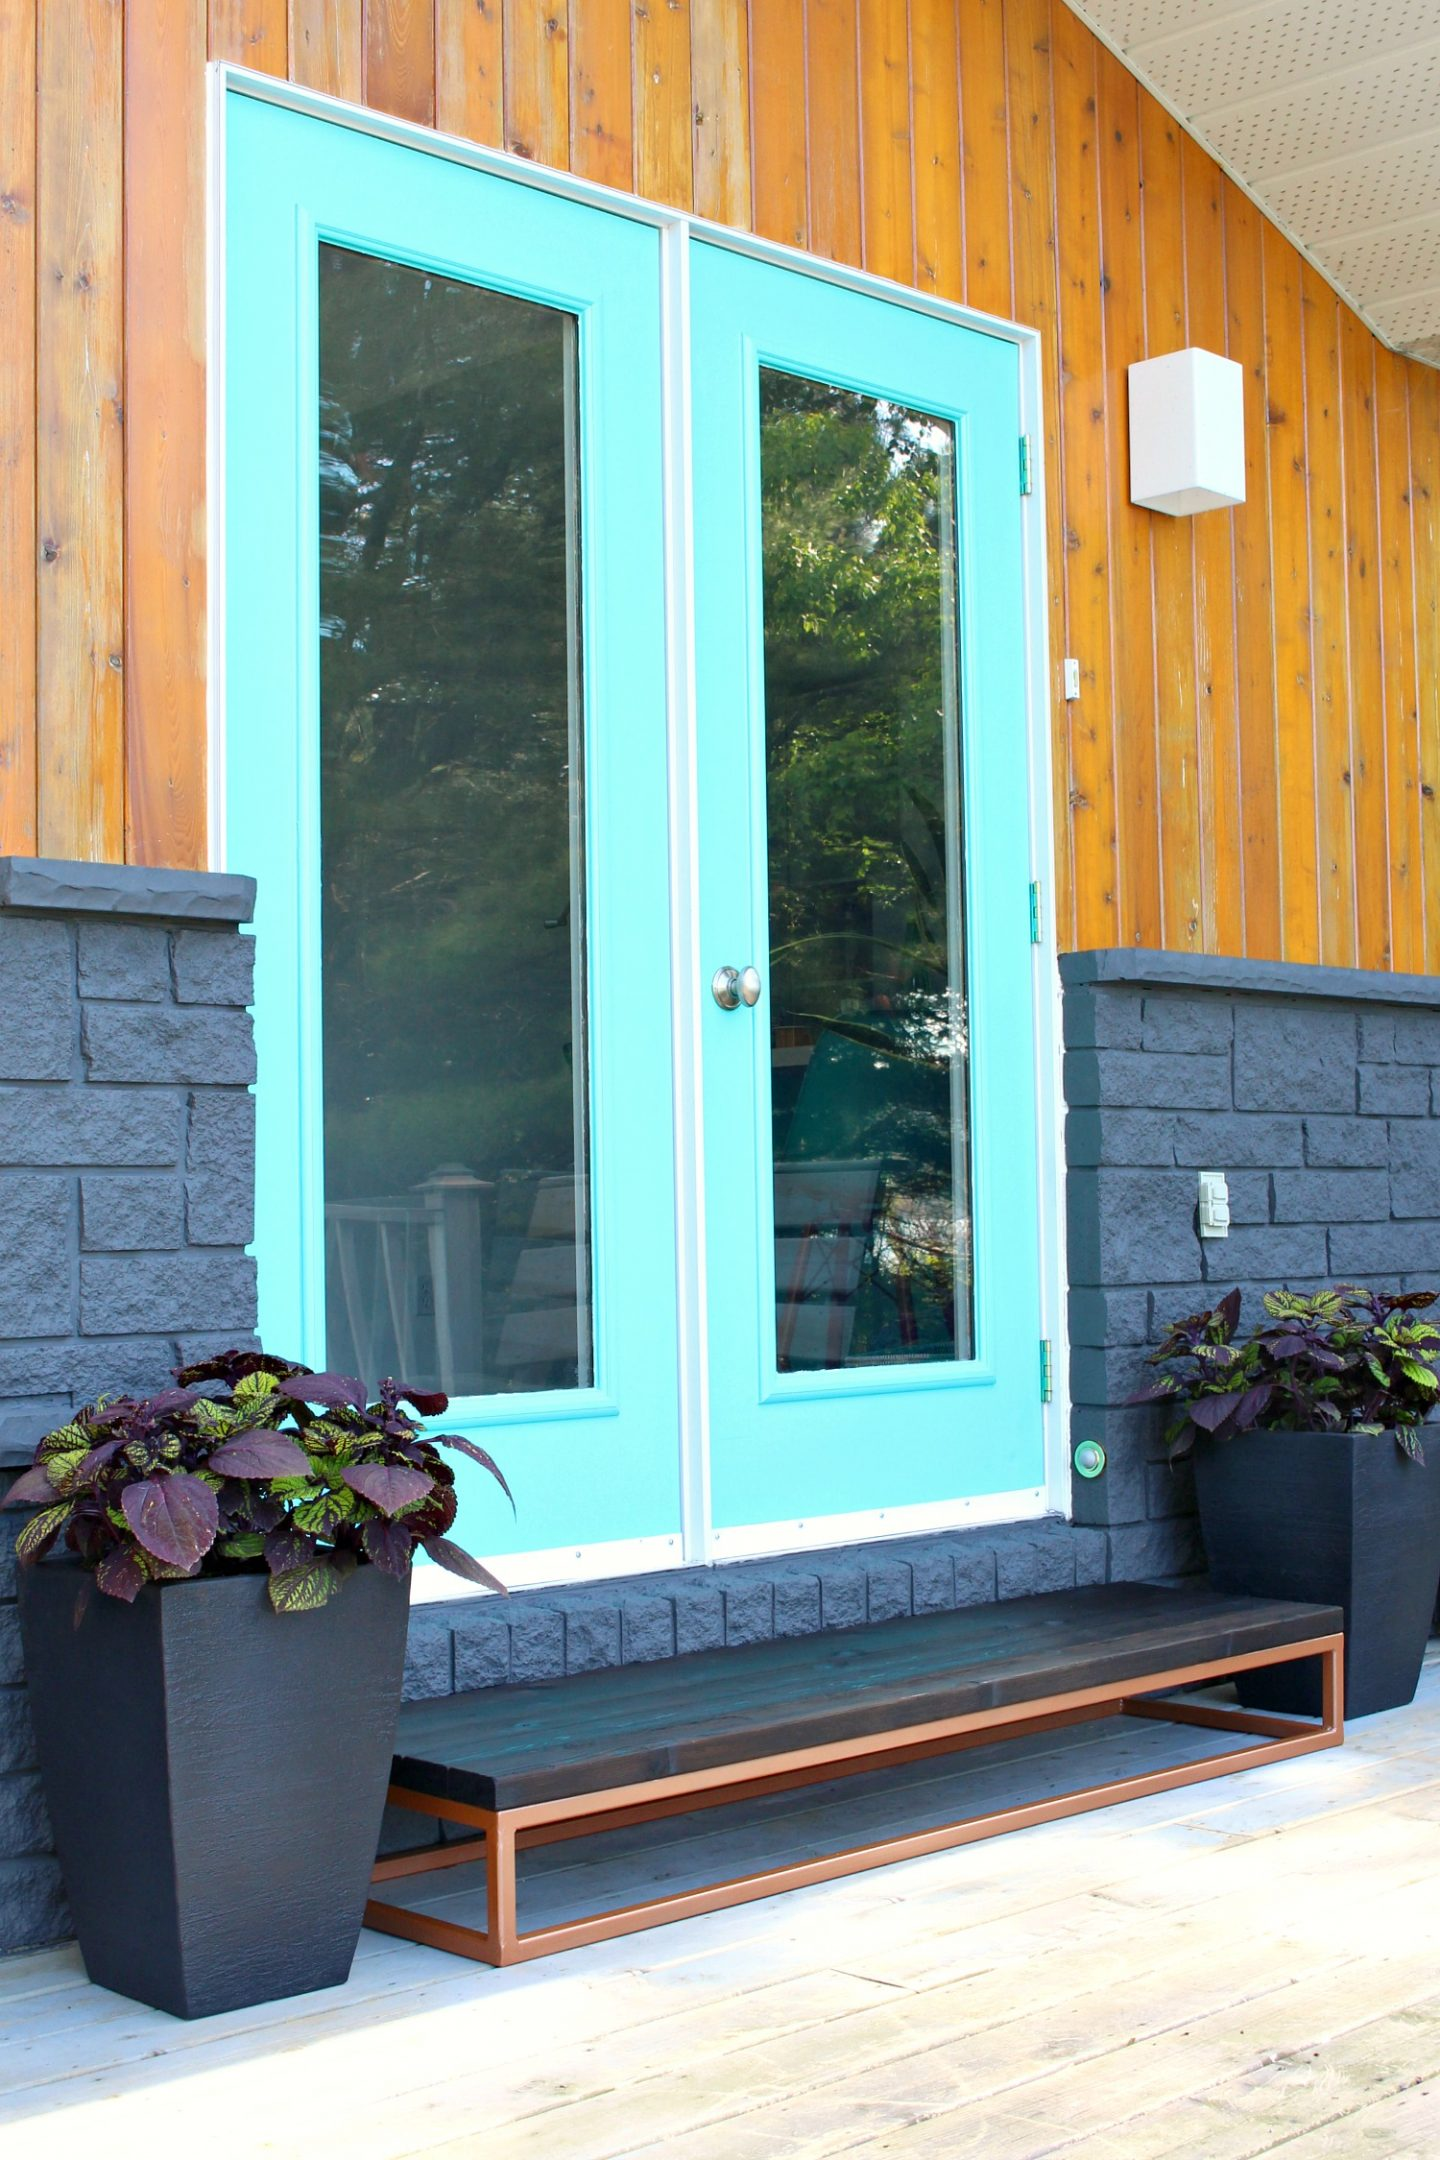 Exterior Door Makeover Reveal - Before and After